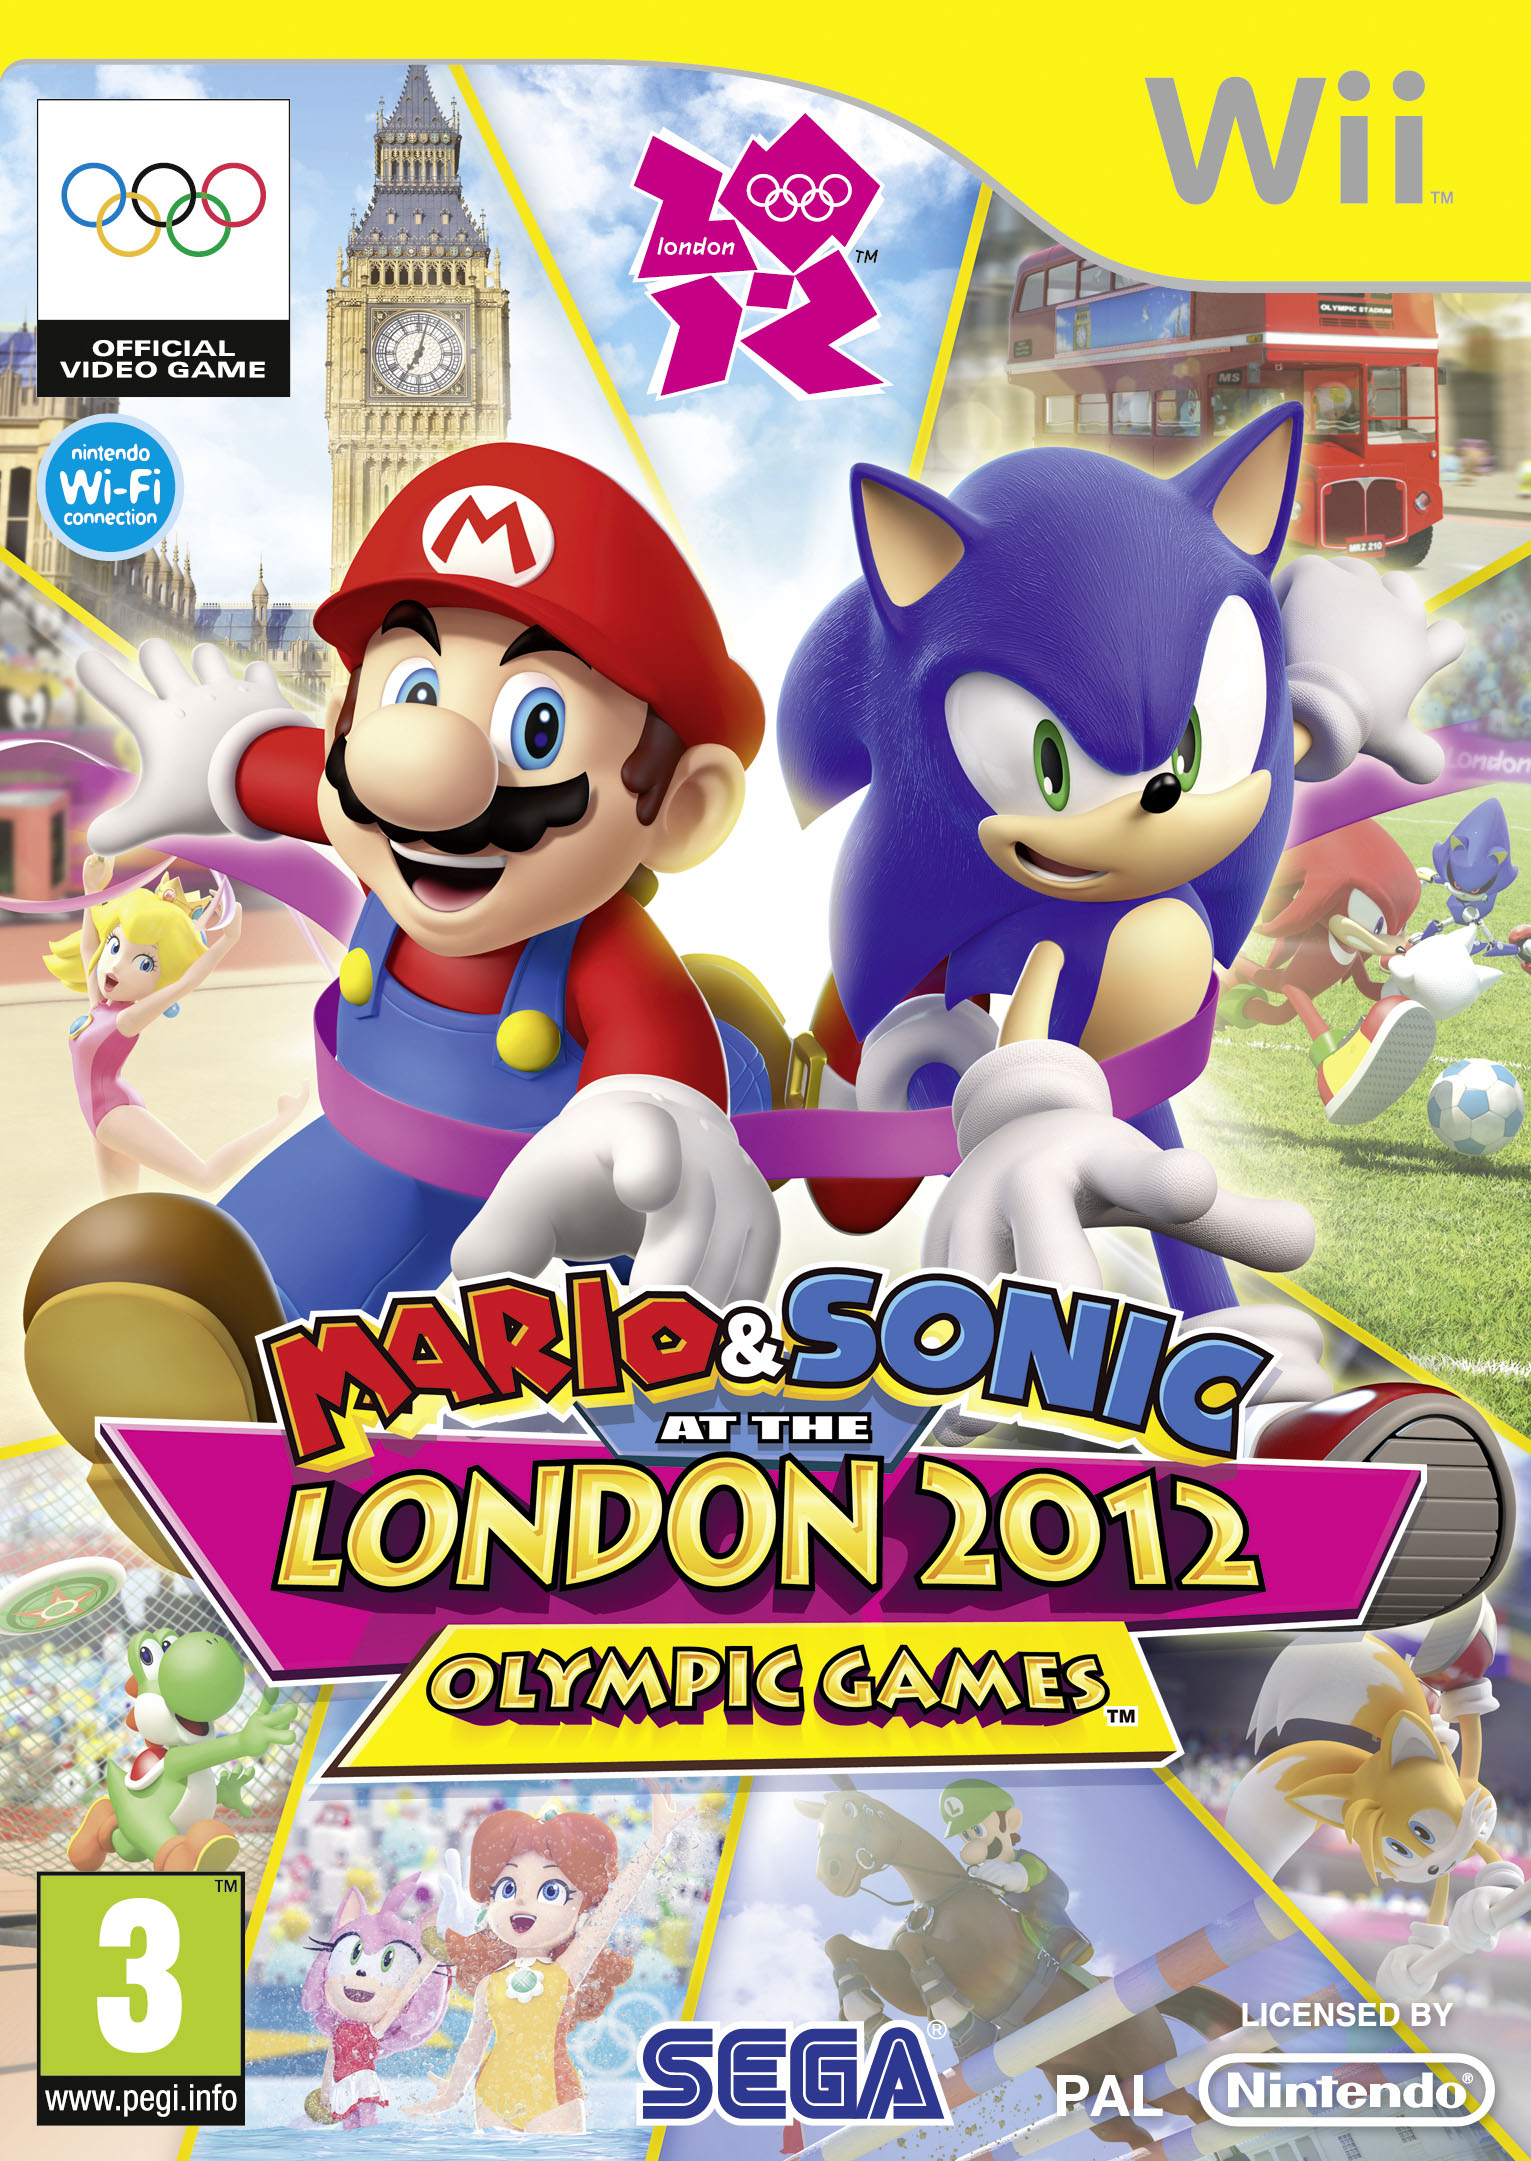 Mario & Sonic at the London 2012 Olympic Games Wii box art UK